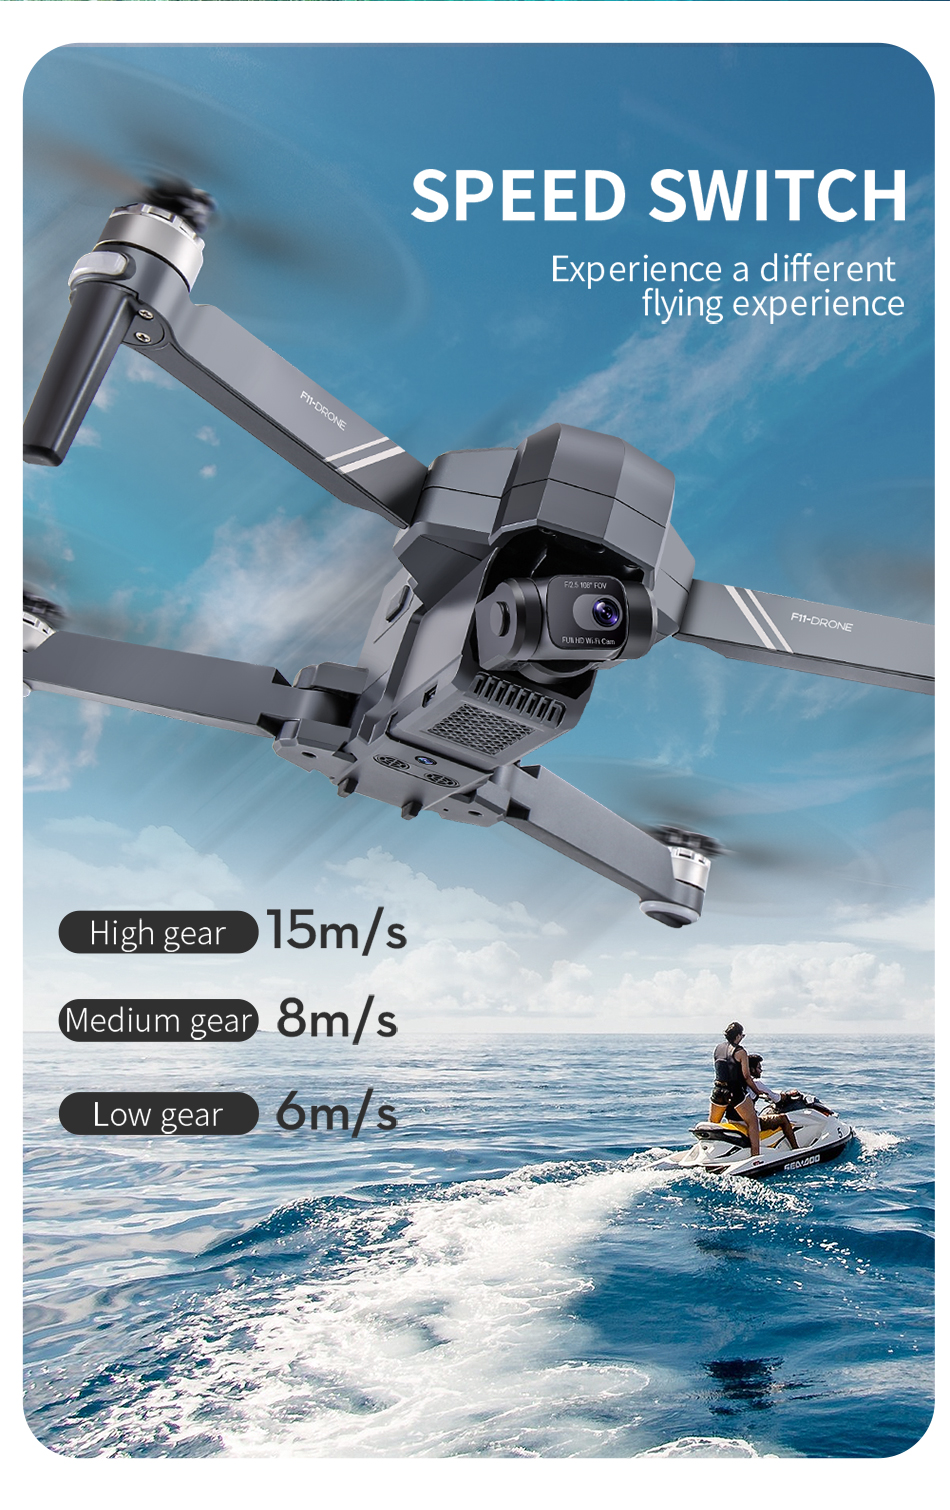 Uf98a2833578248d7b78437175a2acc44o - NEW SJRC F11S 4K PRO Video Camera Drone Professional GPS 2Axis Mechanical EIS Gimbal Quadcopter Brushless Dron Max Flight RC 3KM